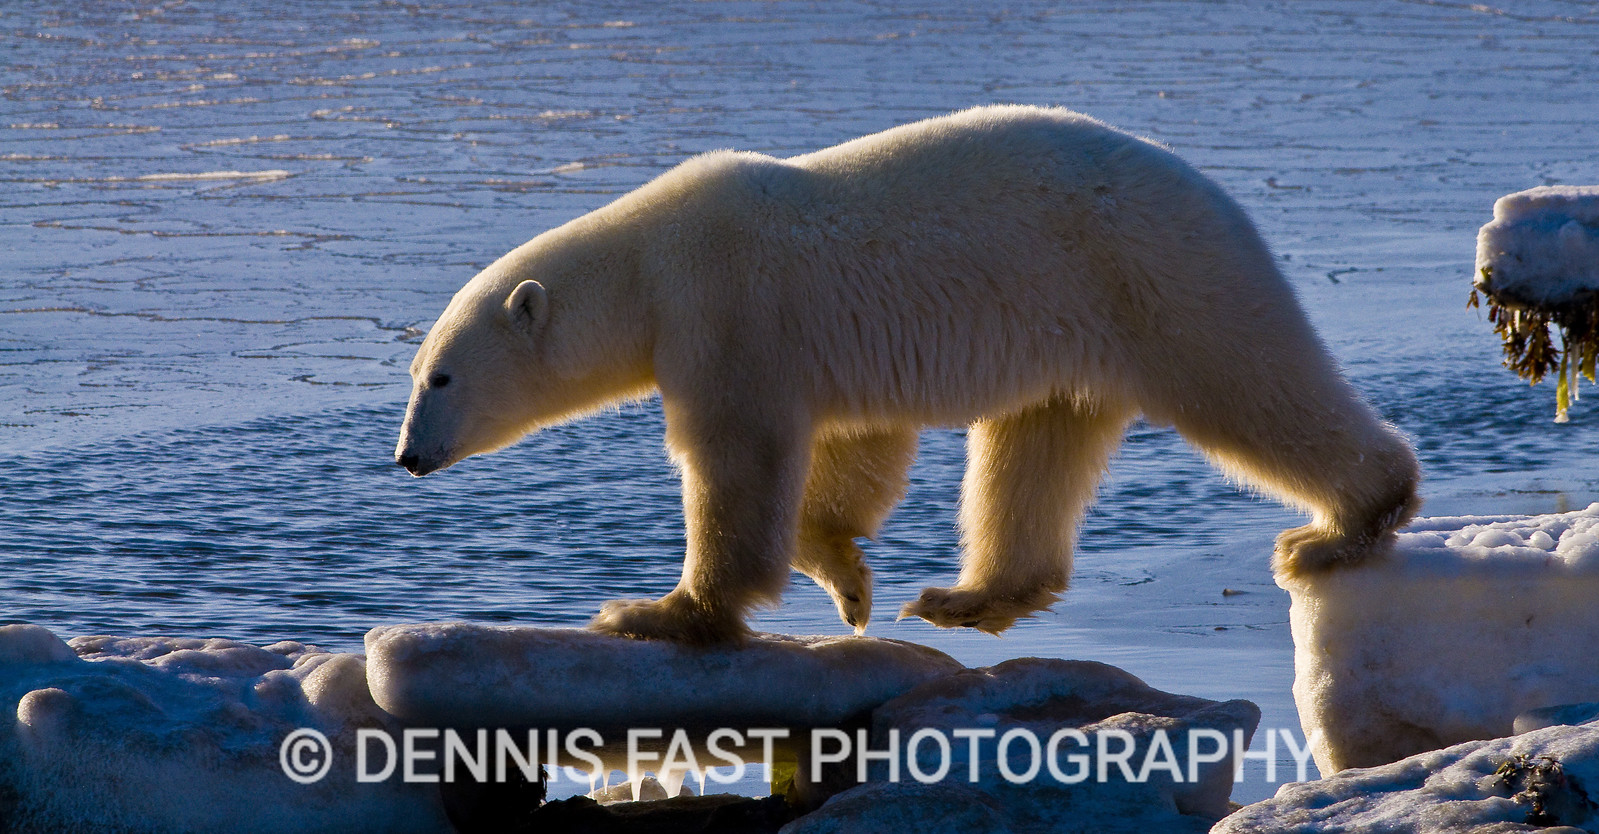 POLAR BEAR ON HUDSON BAY COAST  Polar Bear (Ursa maritimus) on sea ice off the sub-arctic coast of Hudson Bay, Churchill, Manitoba, Canada. Bears come to the coast of Hudson Bay in Fall waiting for the ice to freeze, and looking for a careless seal or for a dead whale to wash up. Global warming has shortened their winter so they are increasingly anxious as they wait for winter. While they wait, they engage in frequent wrestling matches to determine a mating hierarchy for the breeding season in March and April. During this time they regularly check on the ice to see if it will carry them out to sea.